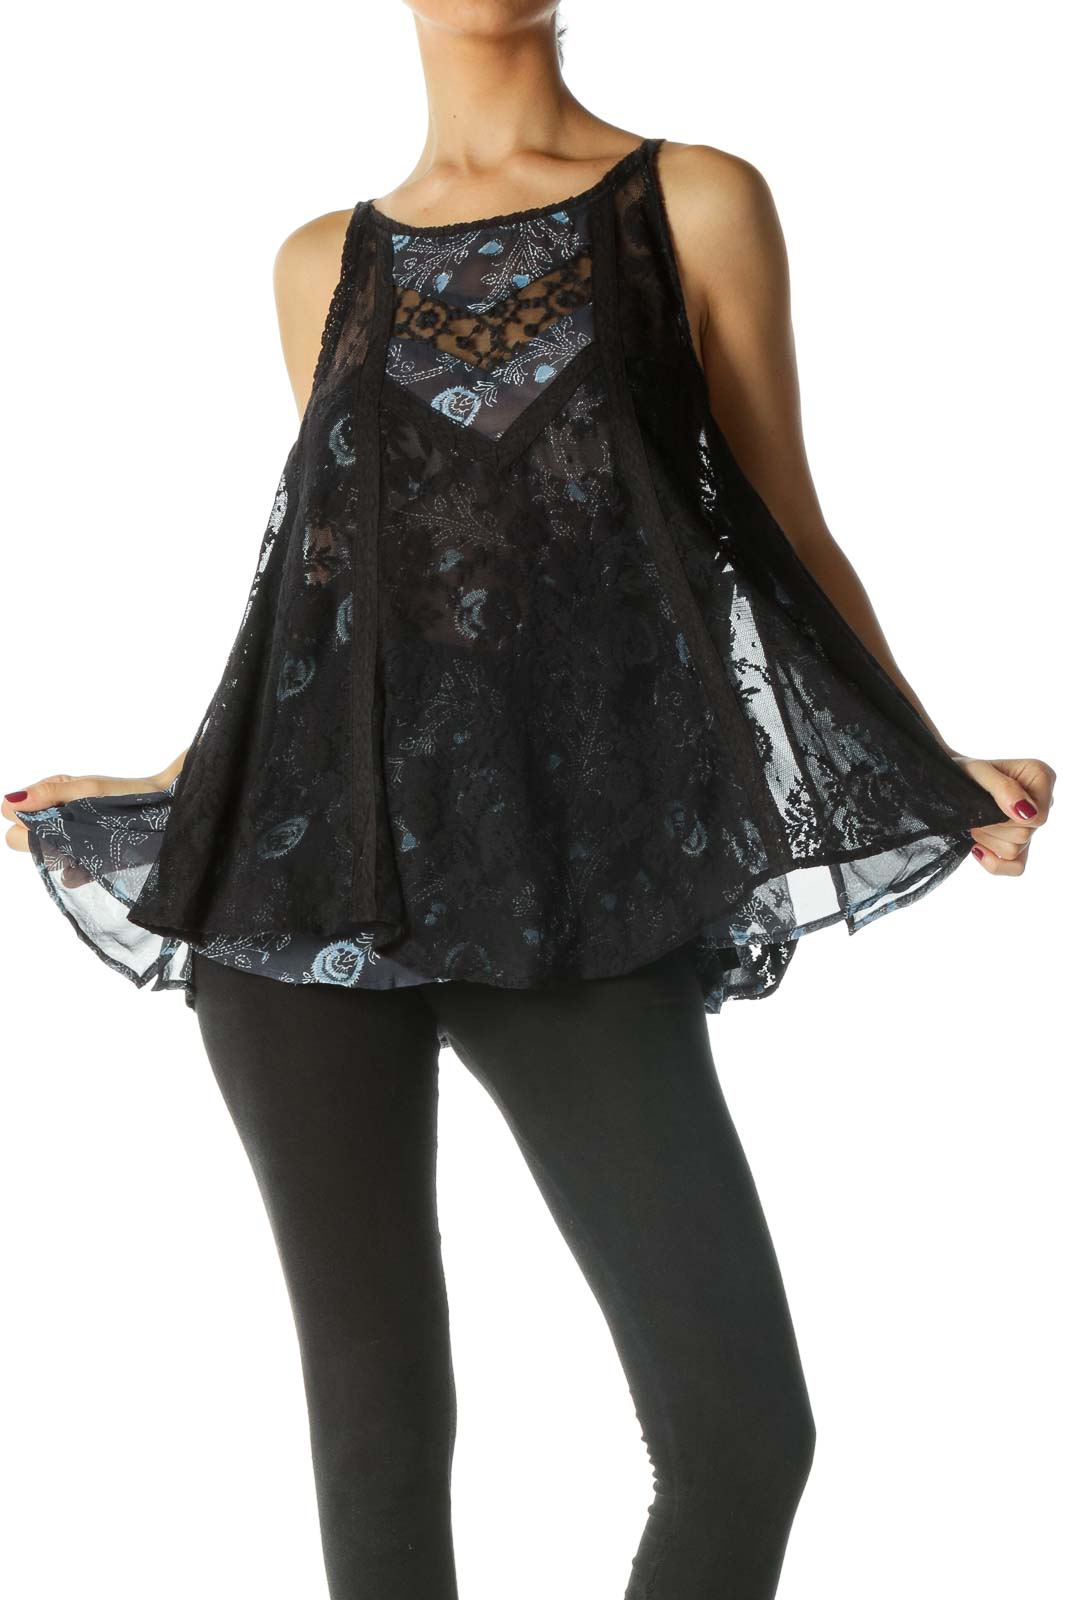 Black and Blue Print Lace Tank Top